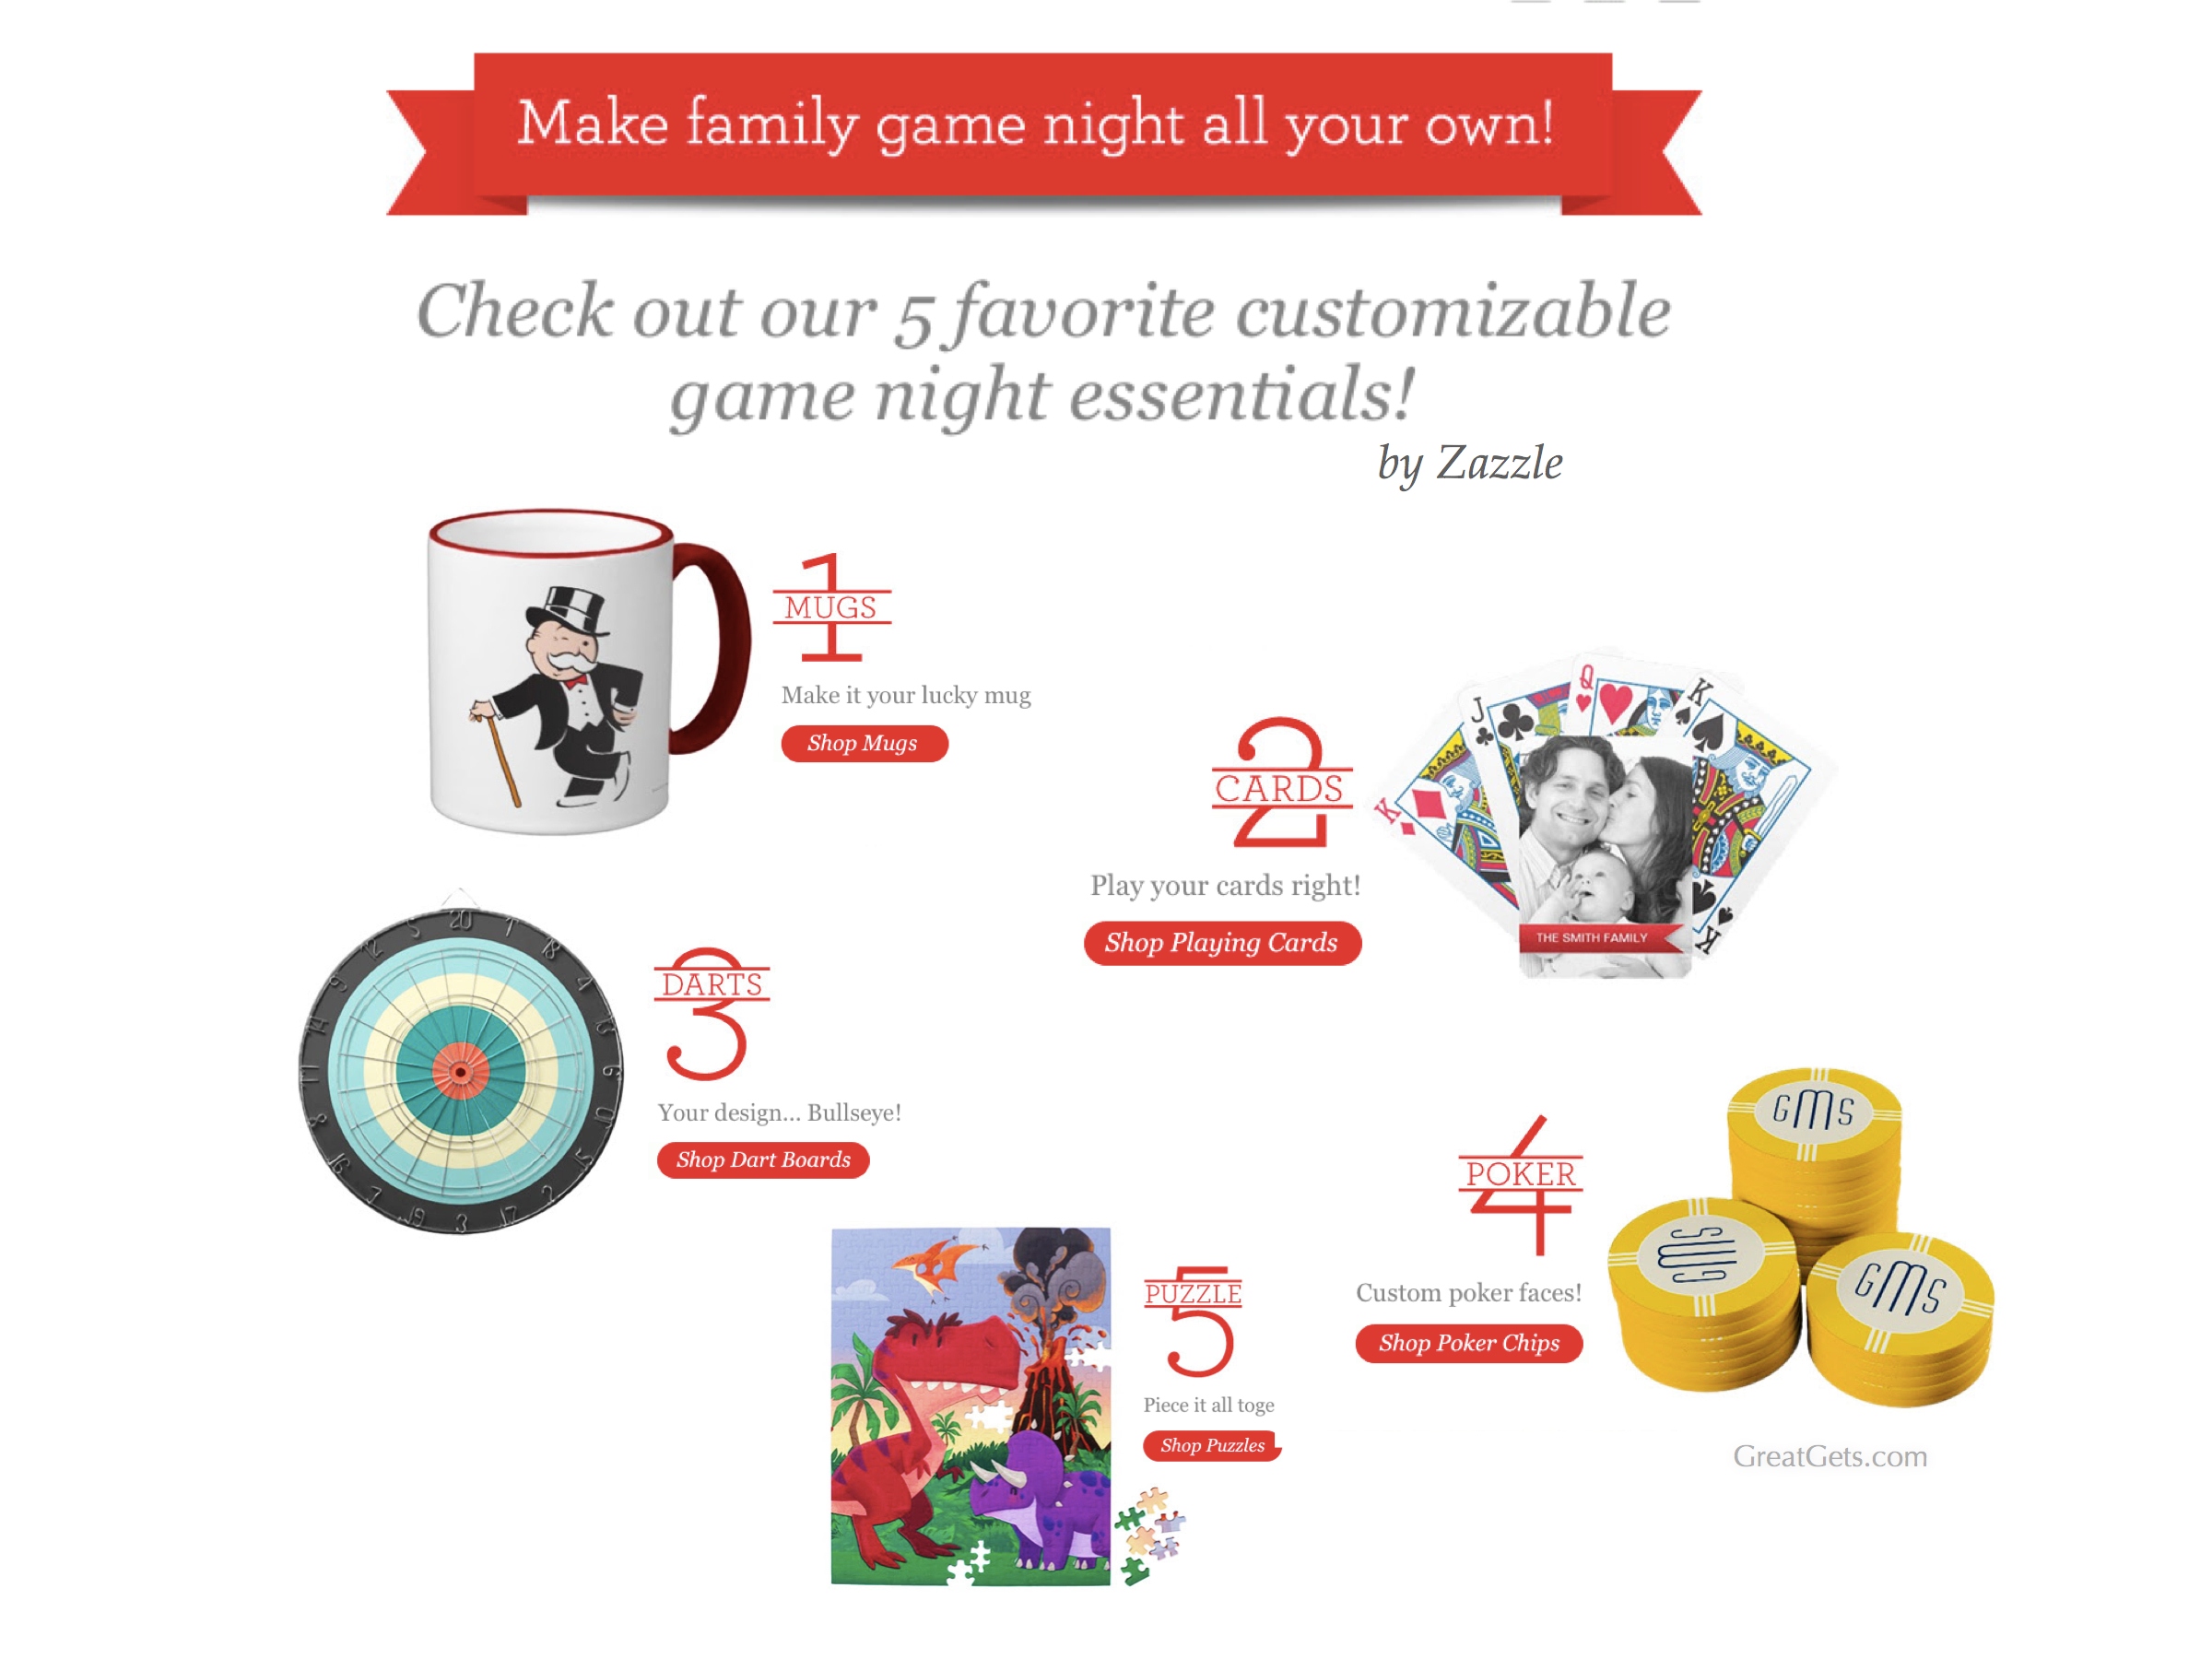 Customizable Game Night Essentials